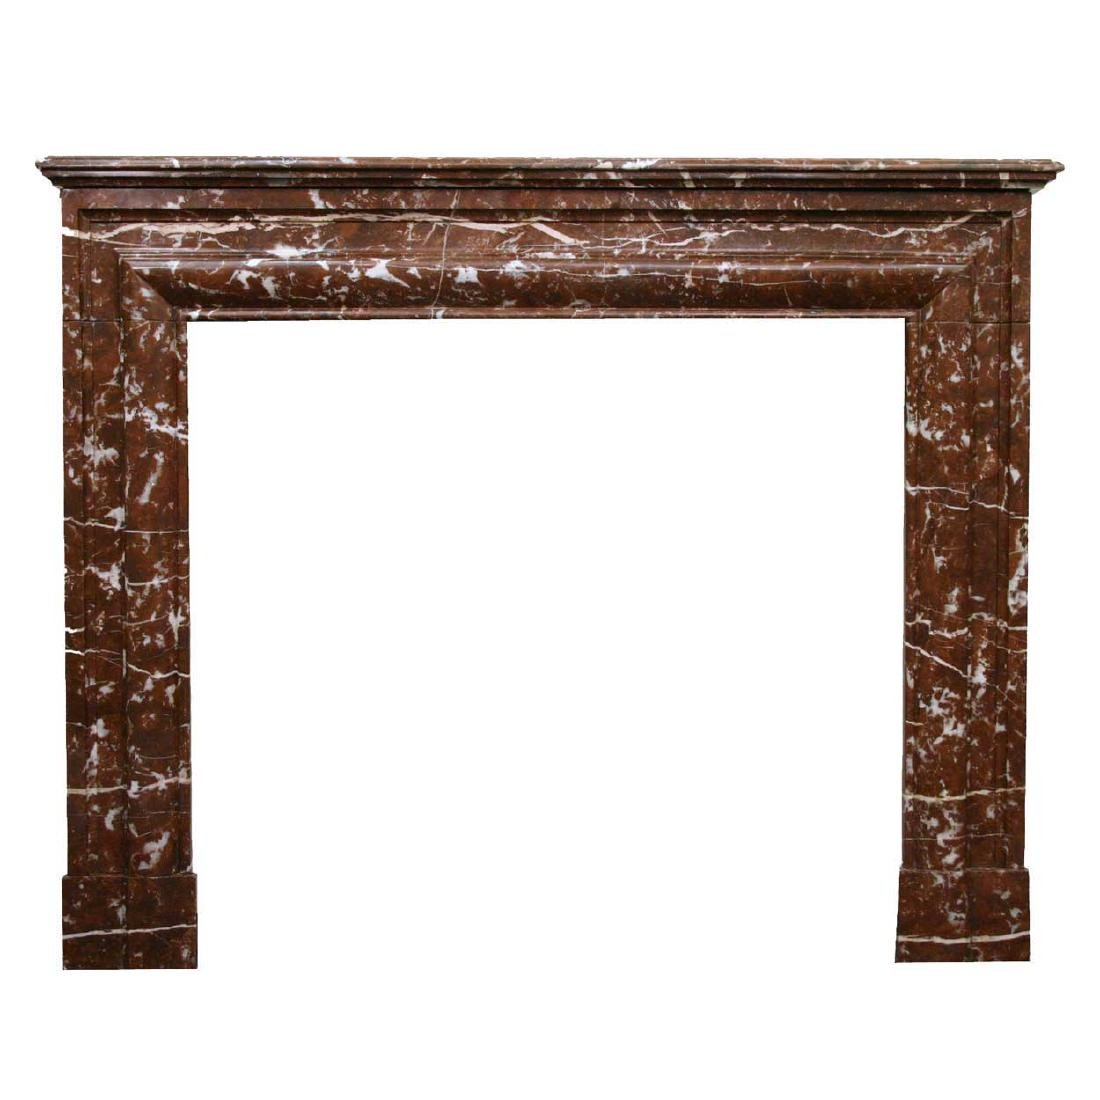 French Rouge Royale Marble Fireplace Surround